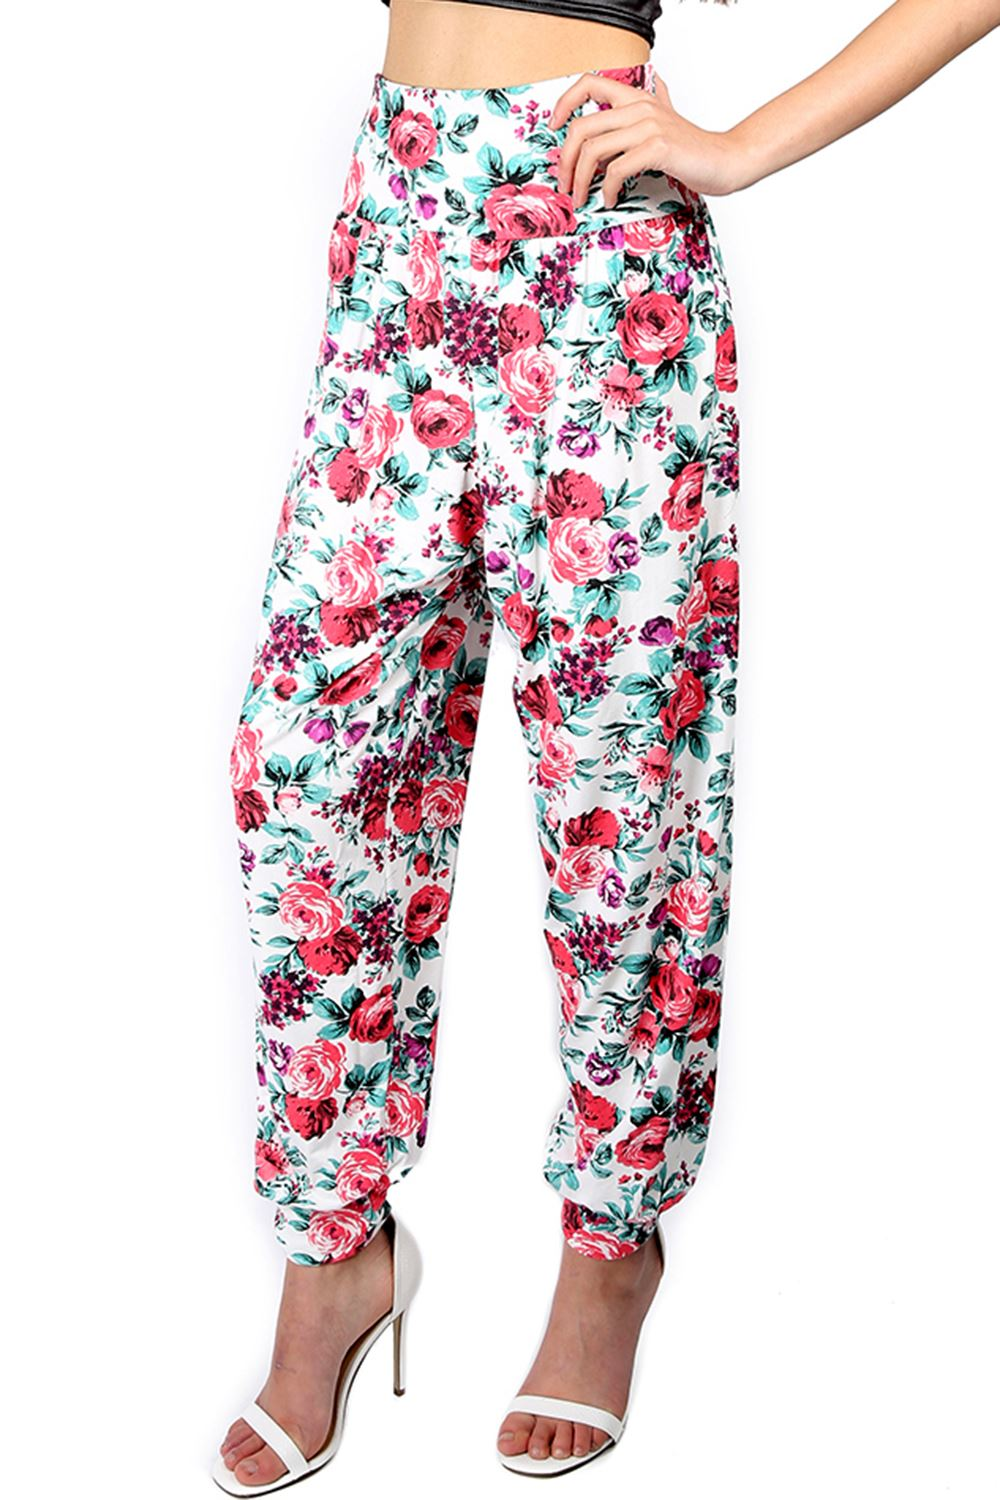 Simple Womens Ladies Harem Pants Printed Ali Baba Bottoms Trousers Leggings Plus Sizes